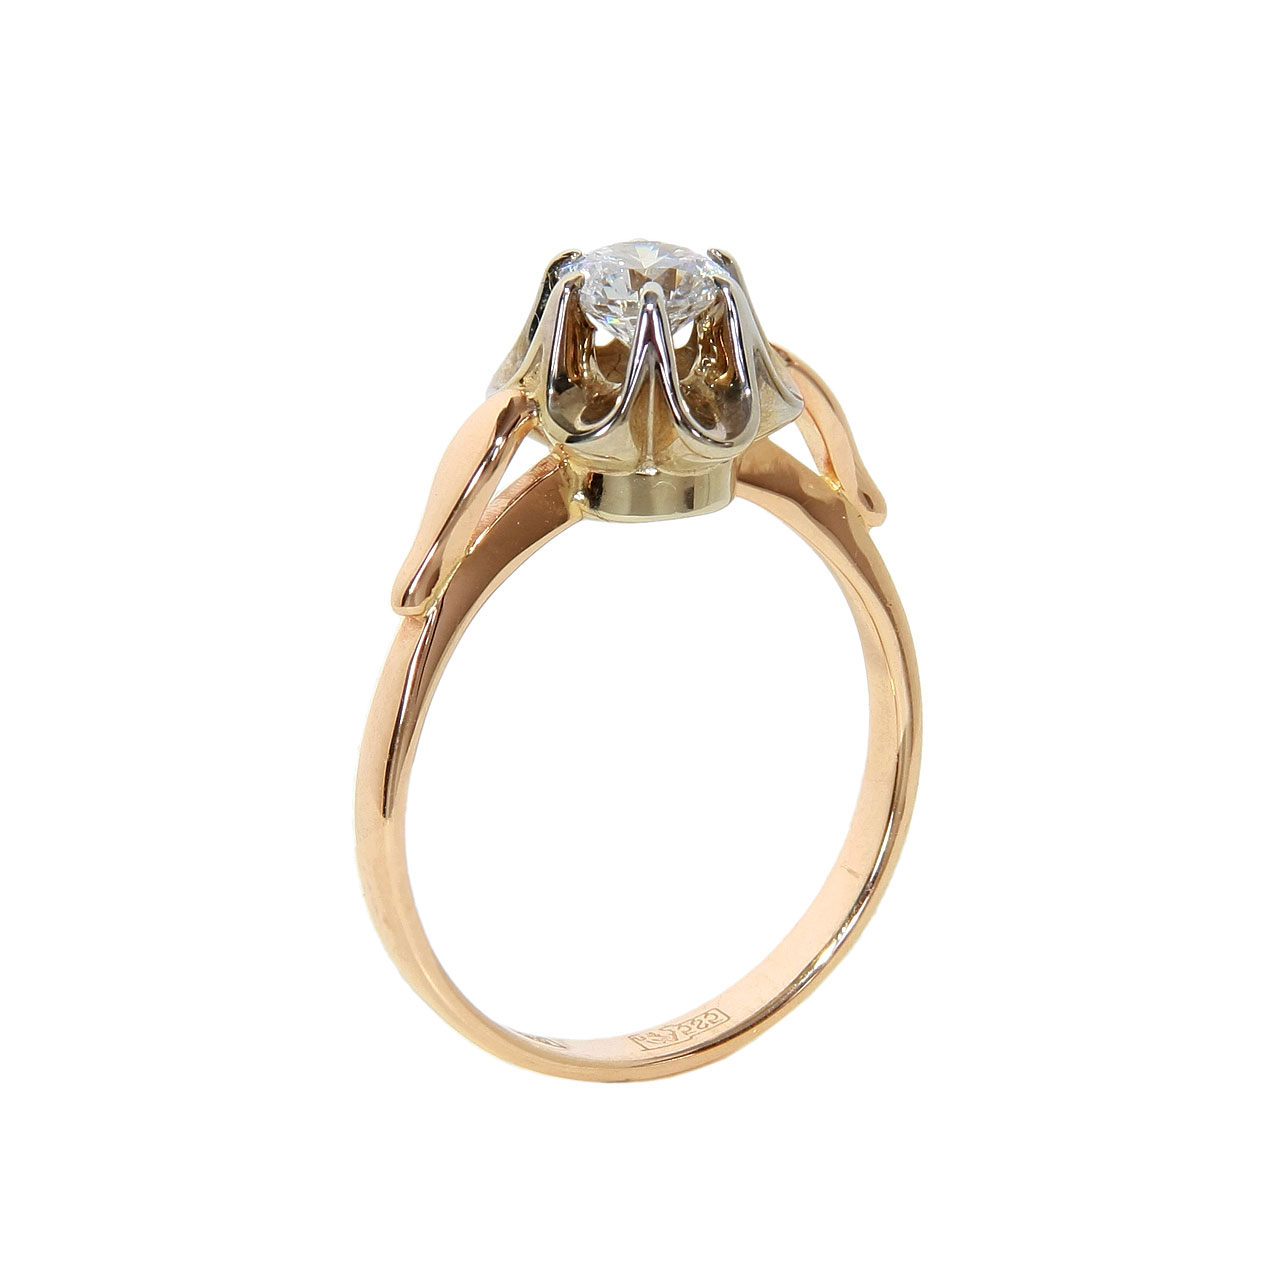 6 Prong Ring With Swarovski CZ